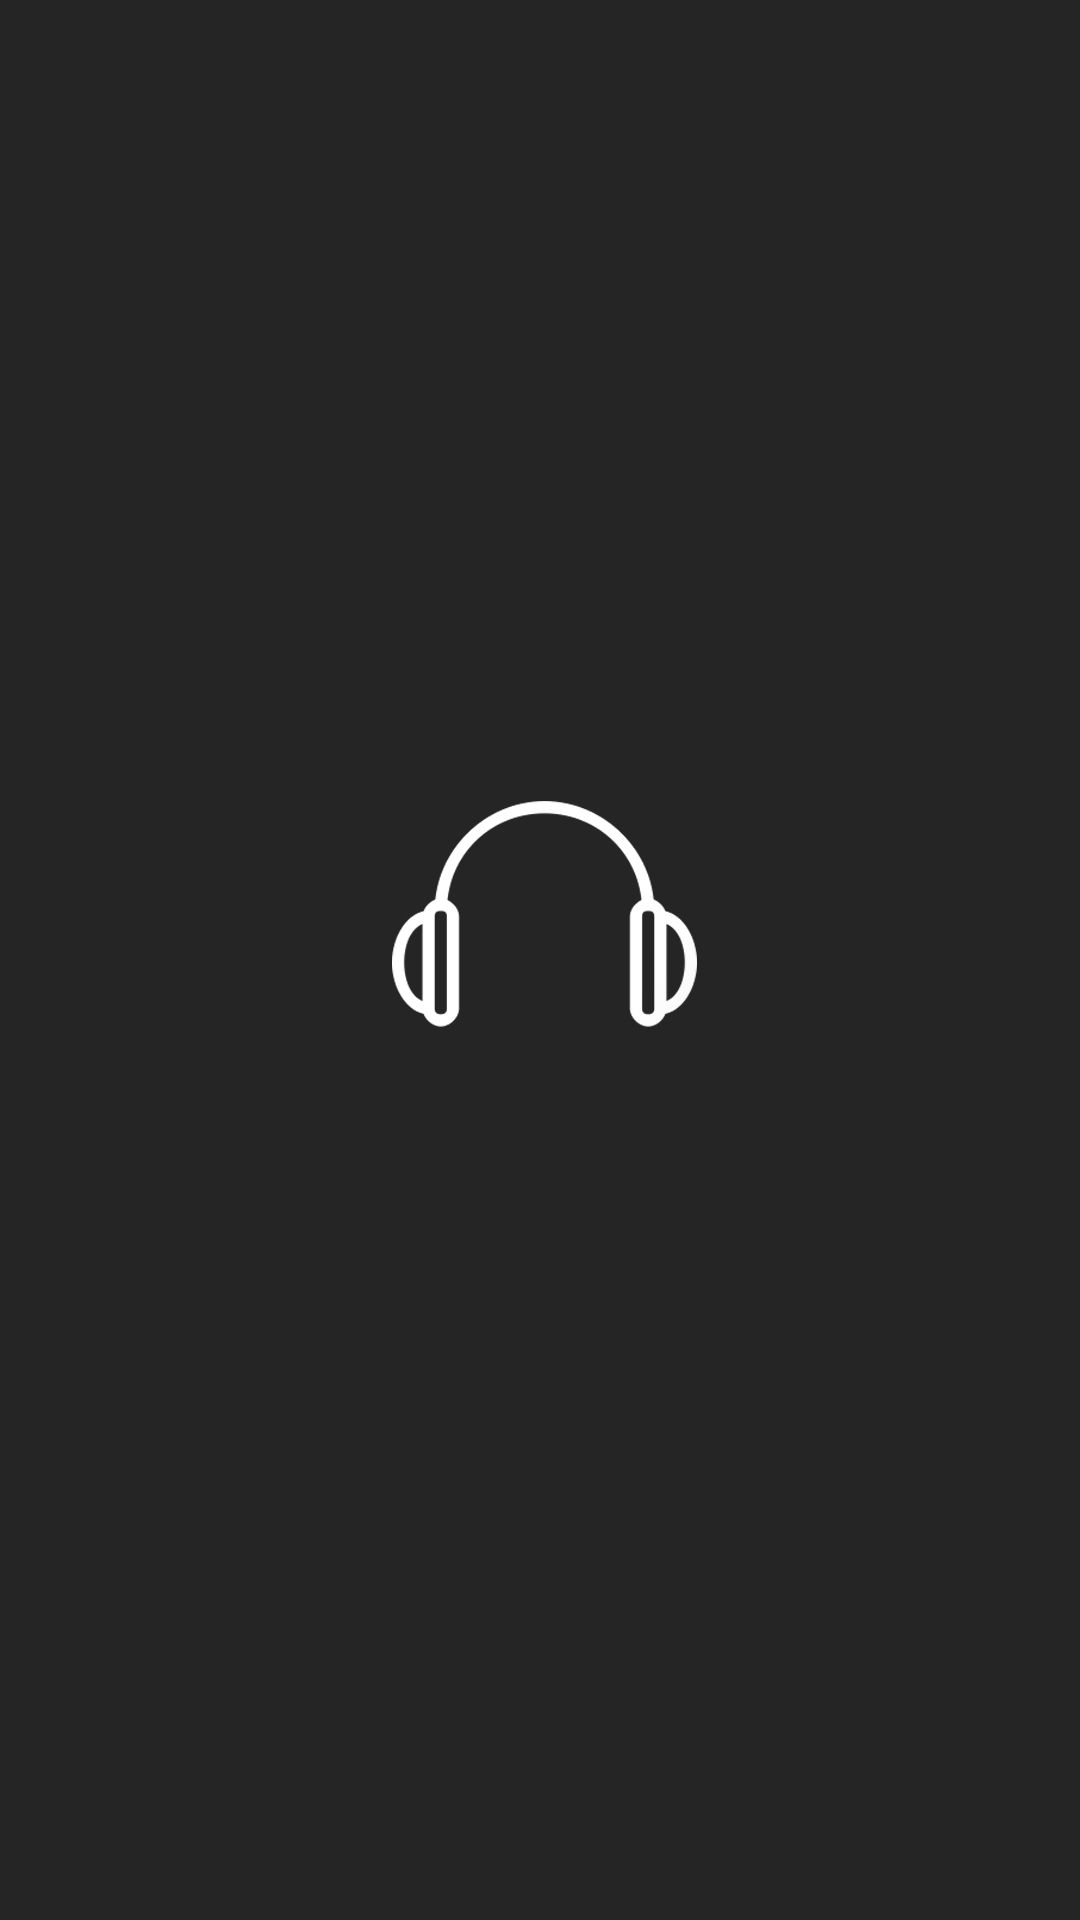 Fitness Instagram Highlight Cover Icons Headphones Icon For Music